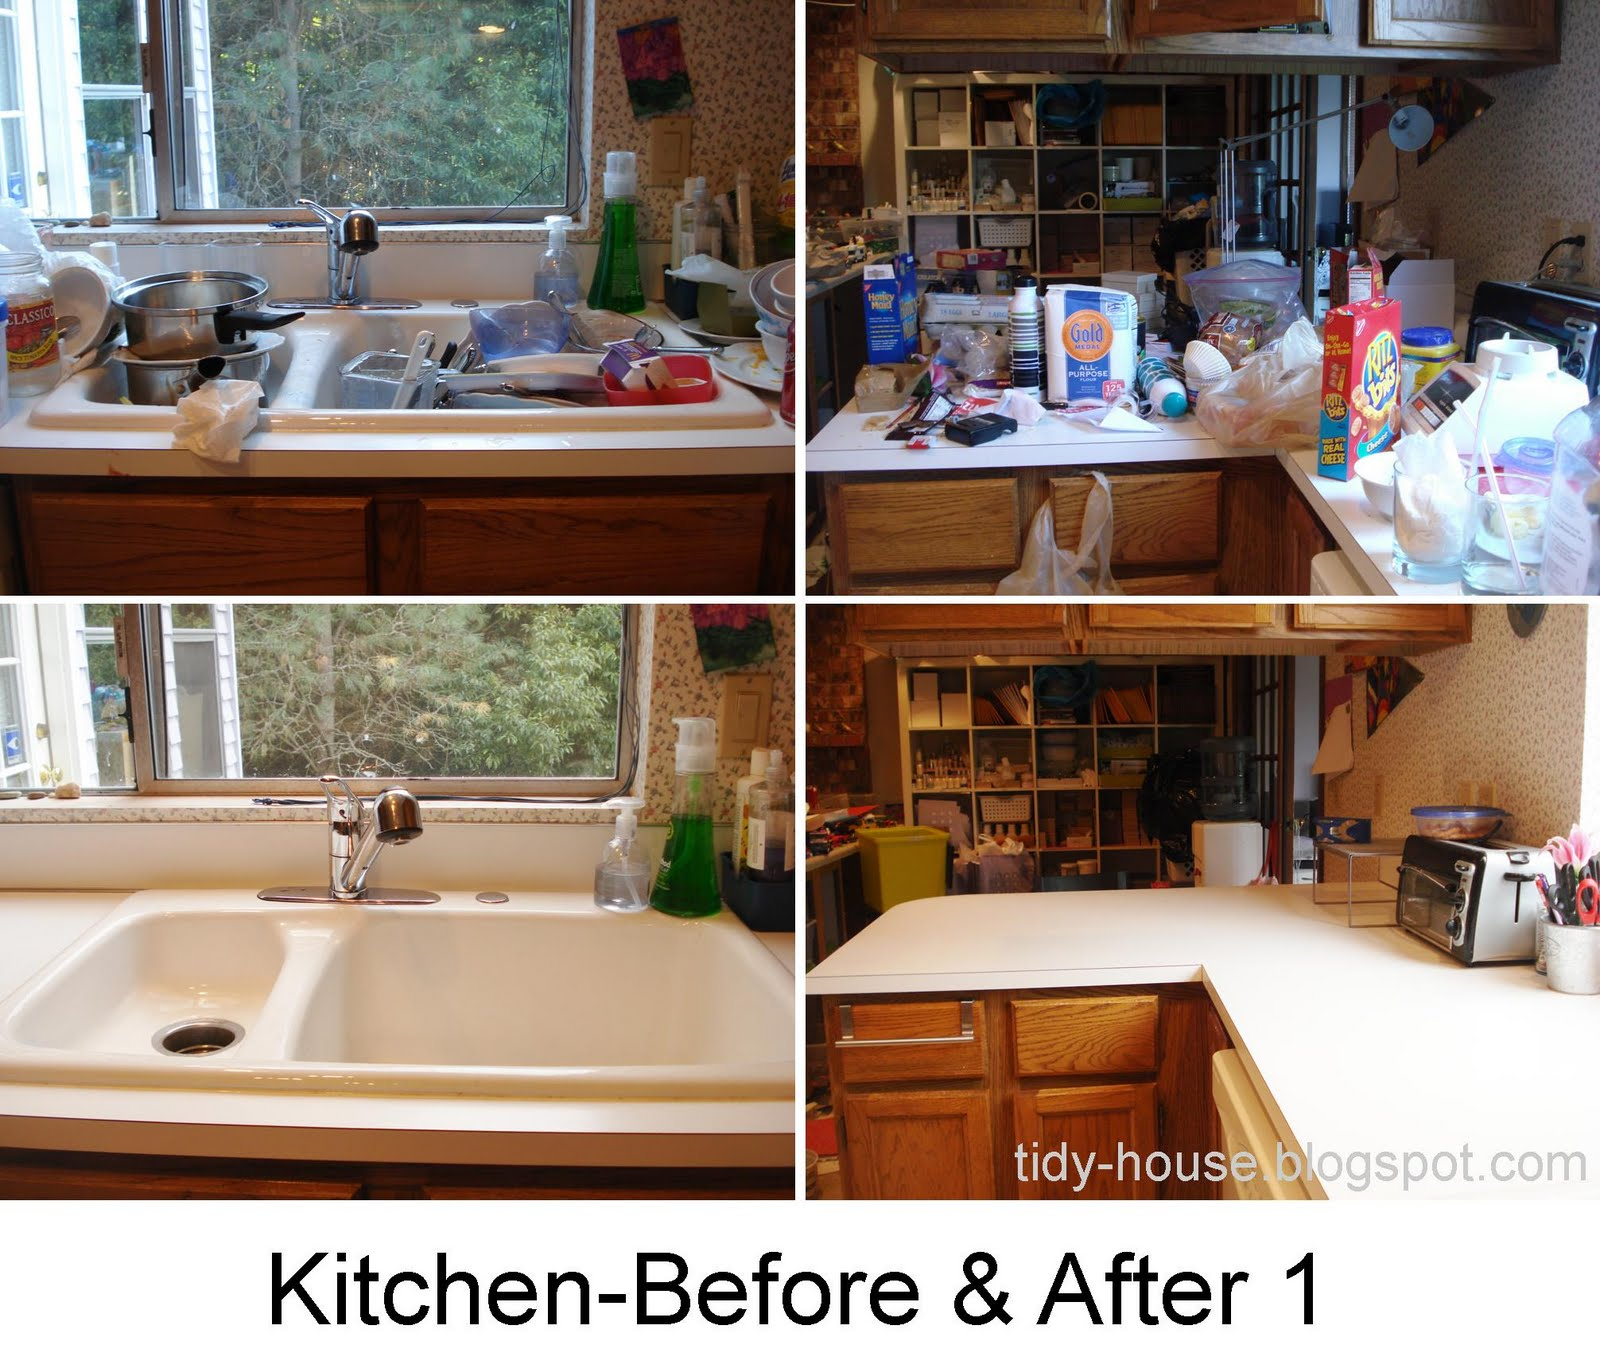 tidy house: final kitchen-before and after